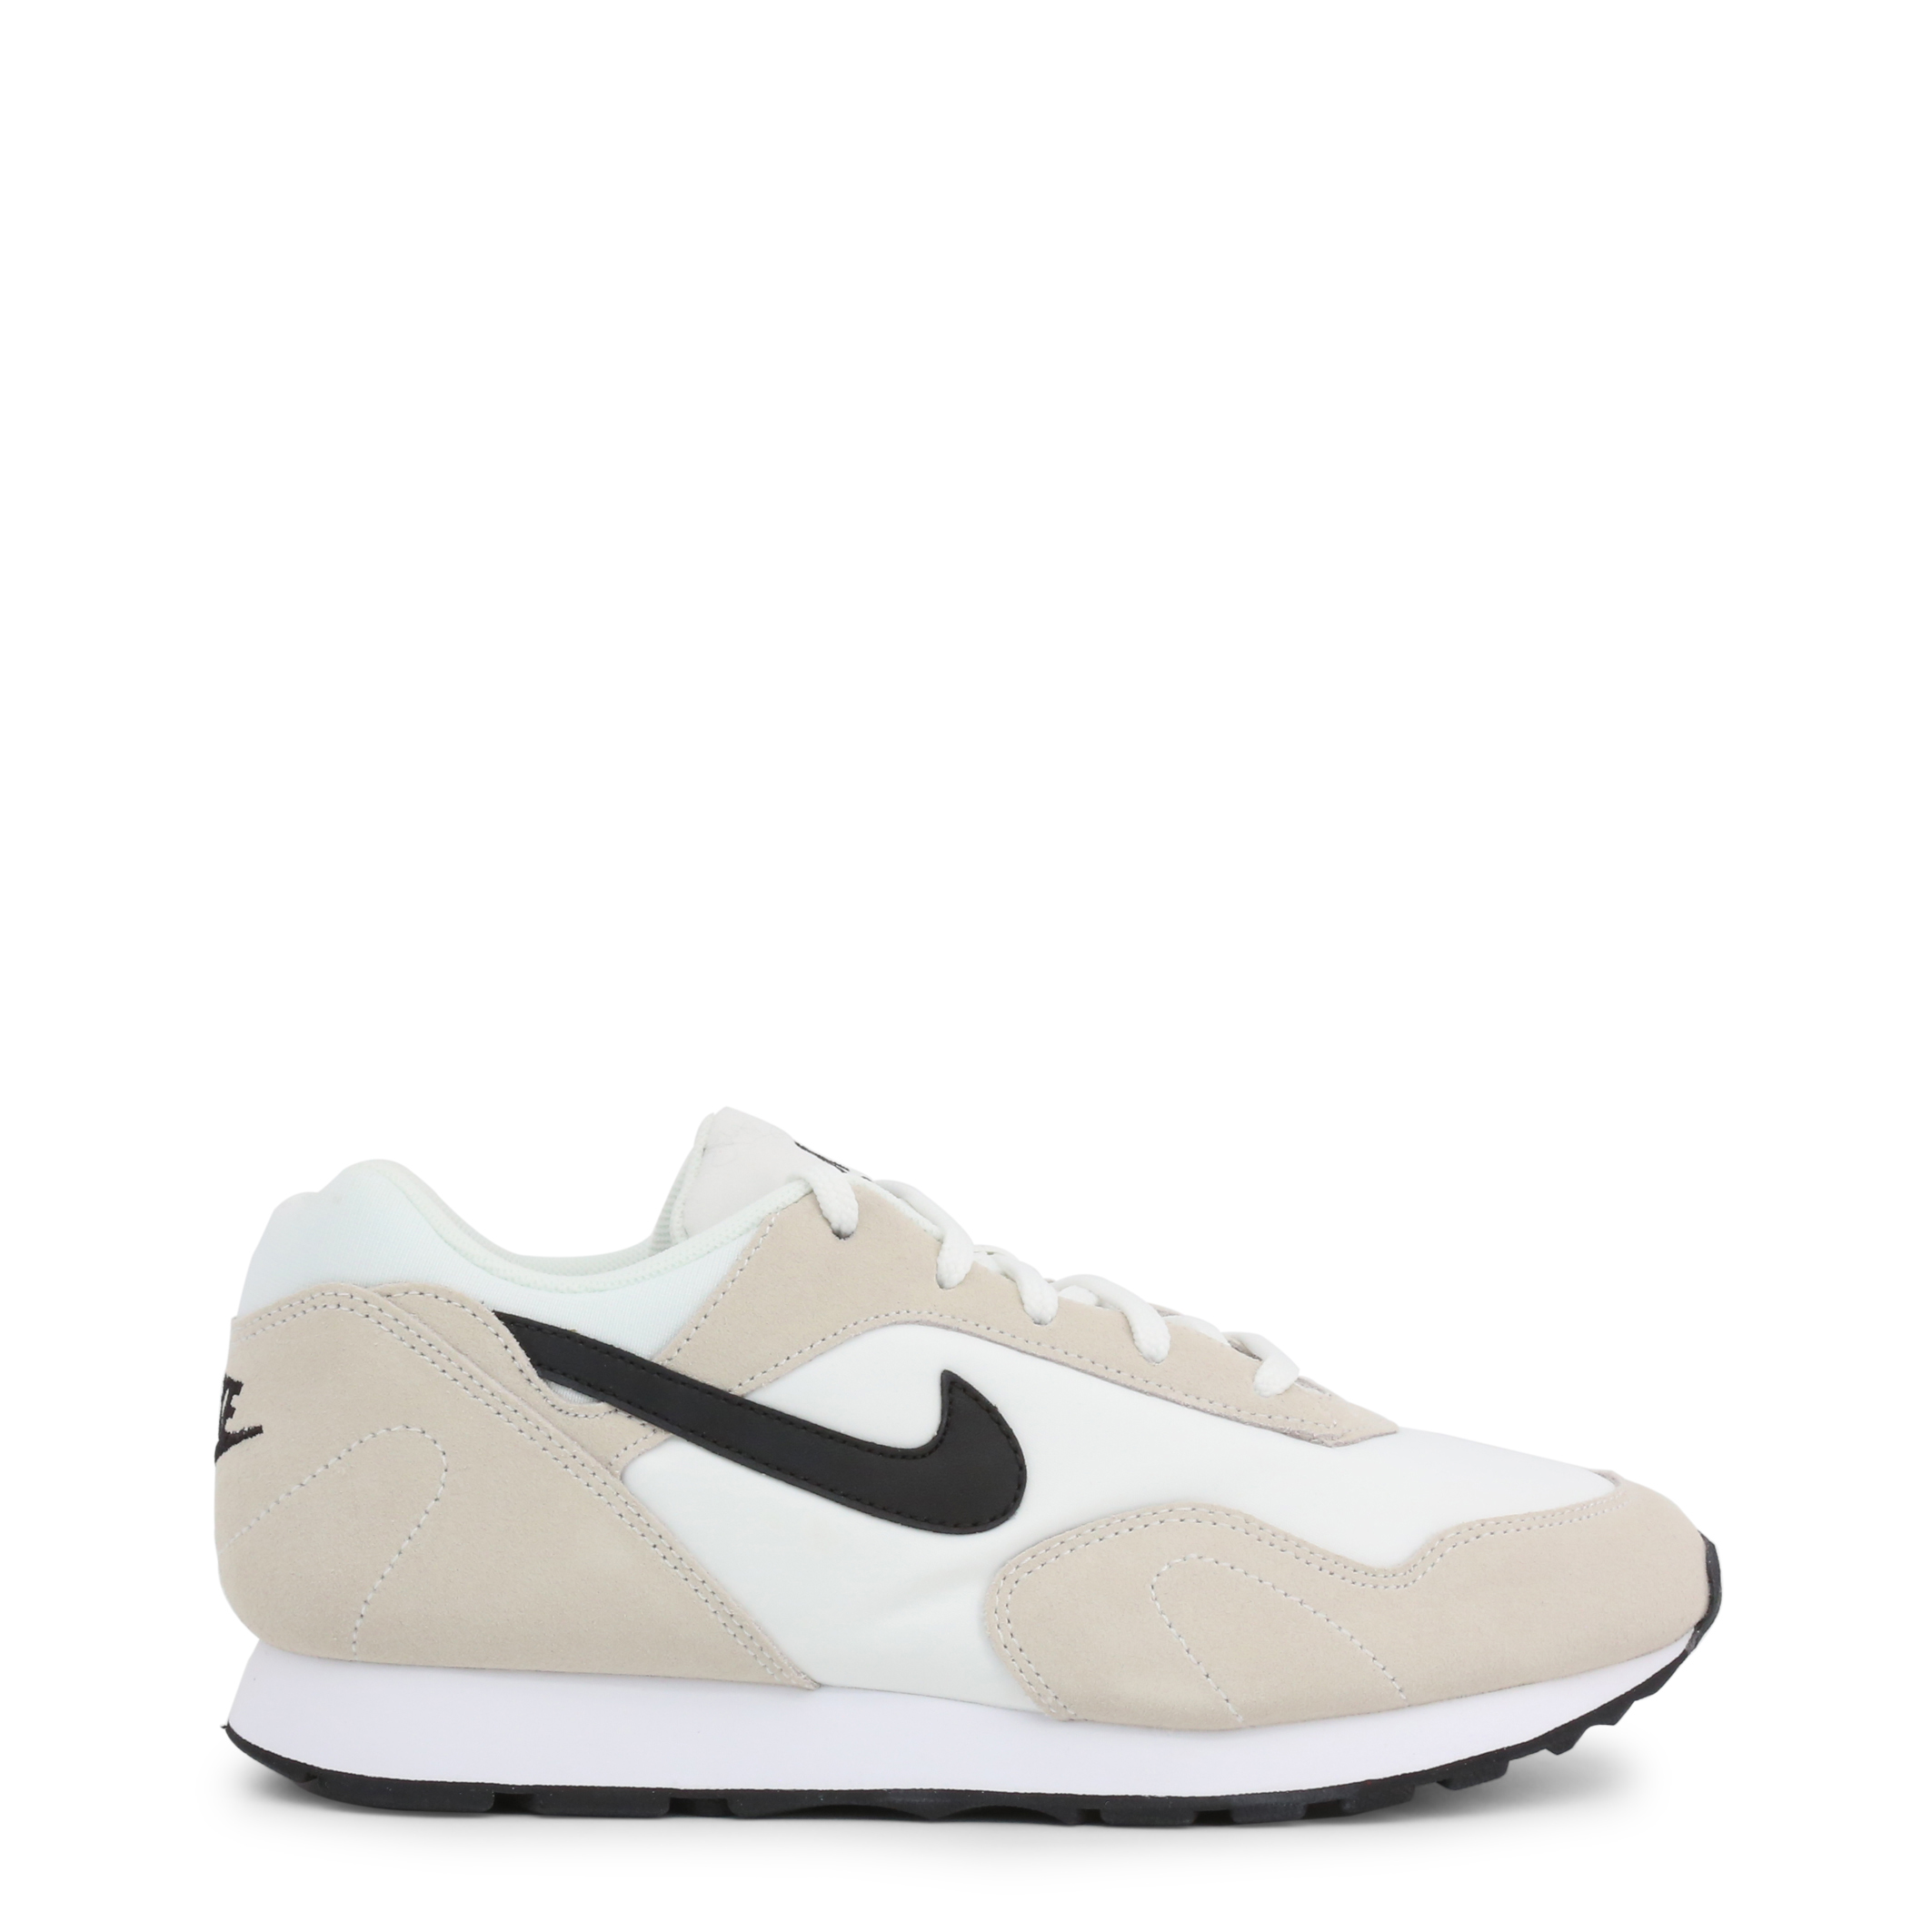 Women's white sneakers Nike Wmns